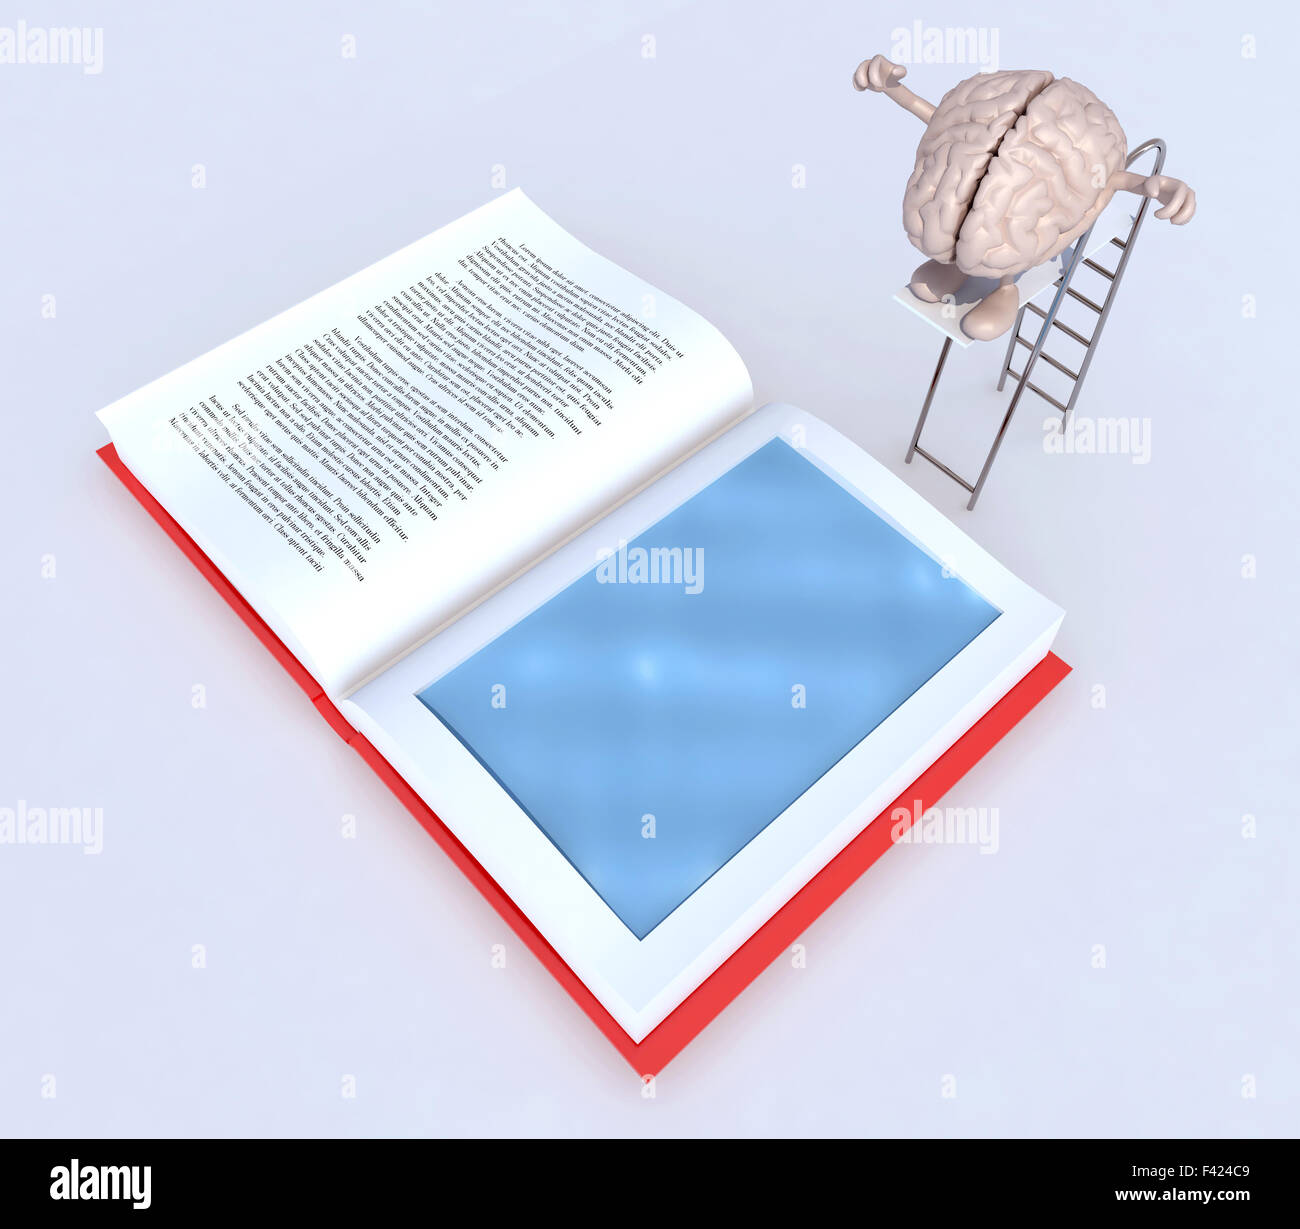 human brain with arms and legs on trampoline dip in the book, 3d illustration - Stock Image